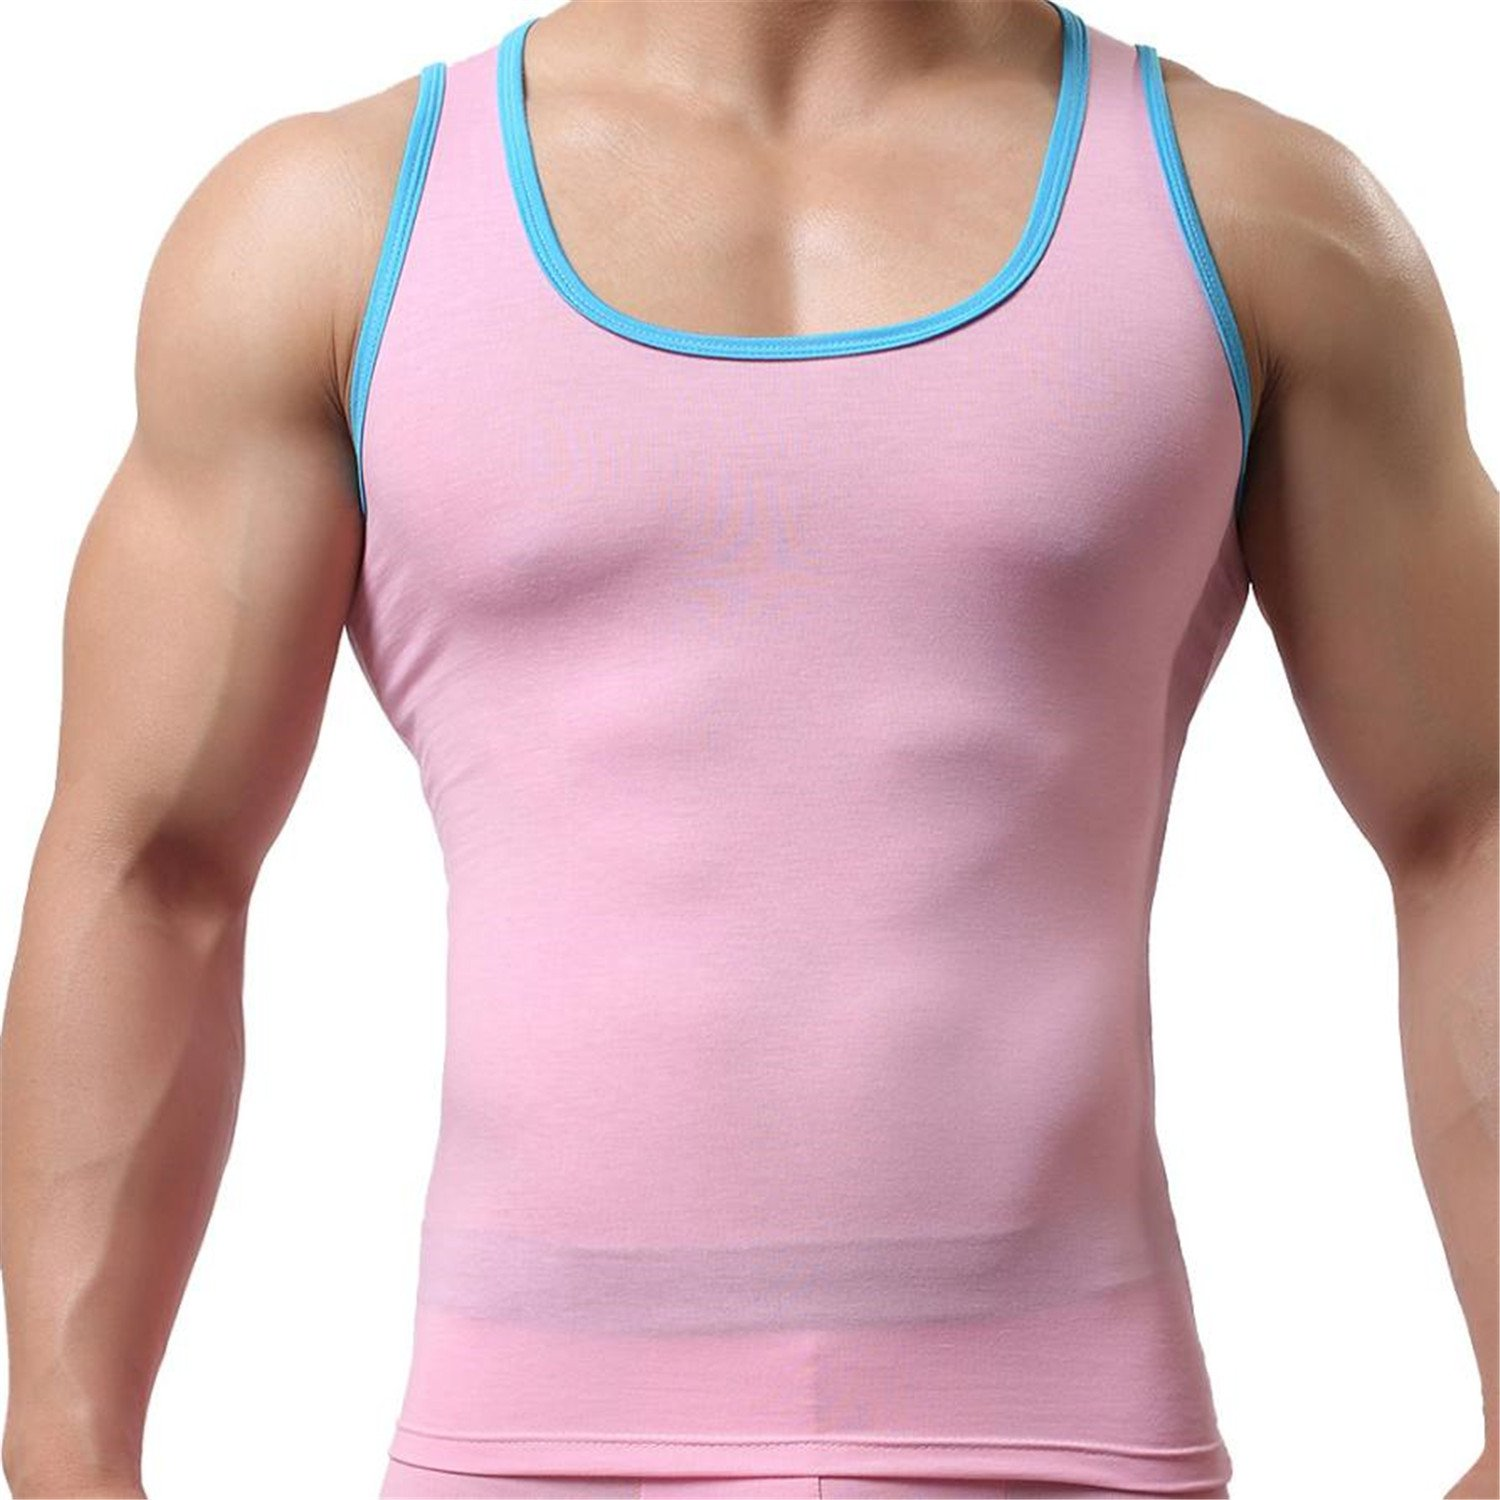 29f6303804 Thadensama 100% Cotton O-Neck Tank Tops Men Summer Male Sleeveless Vest  Square Collar New Casual Gilet Elastic Tops Muscle Summer Tees Pink M:  Amazon.ca: ...